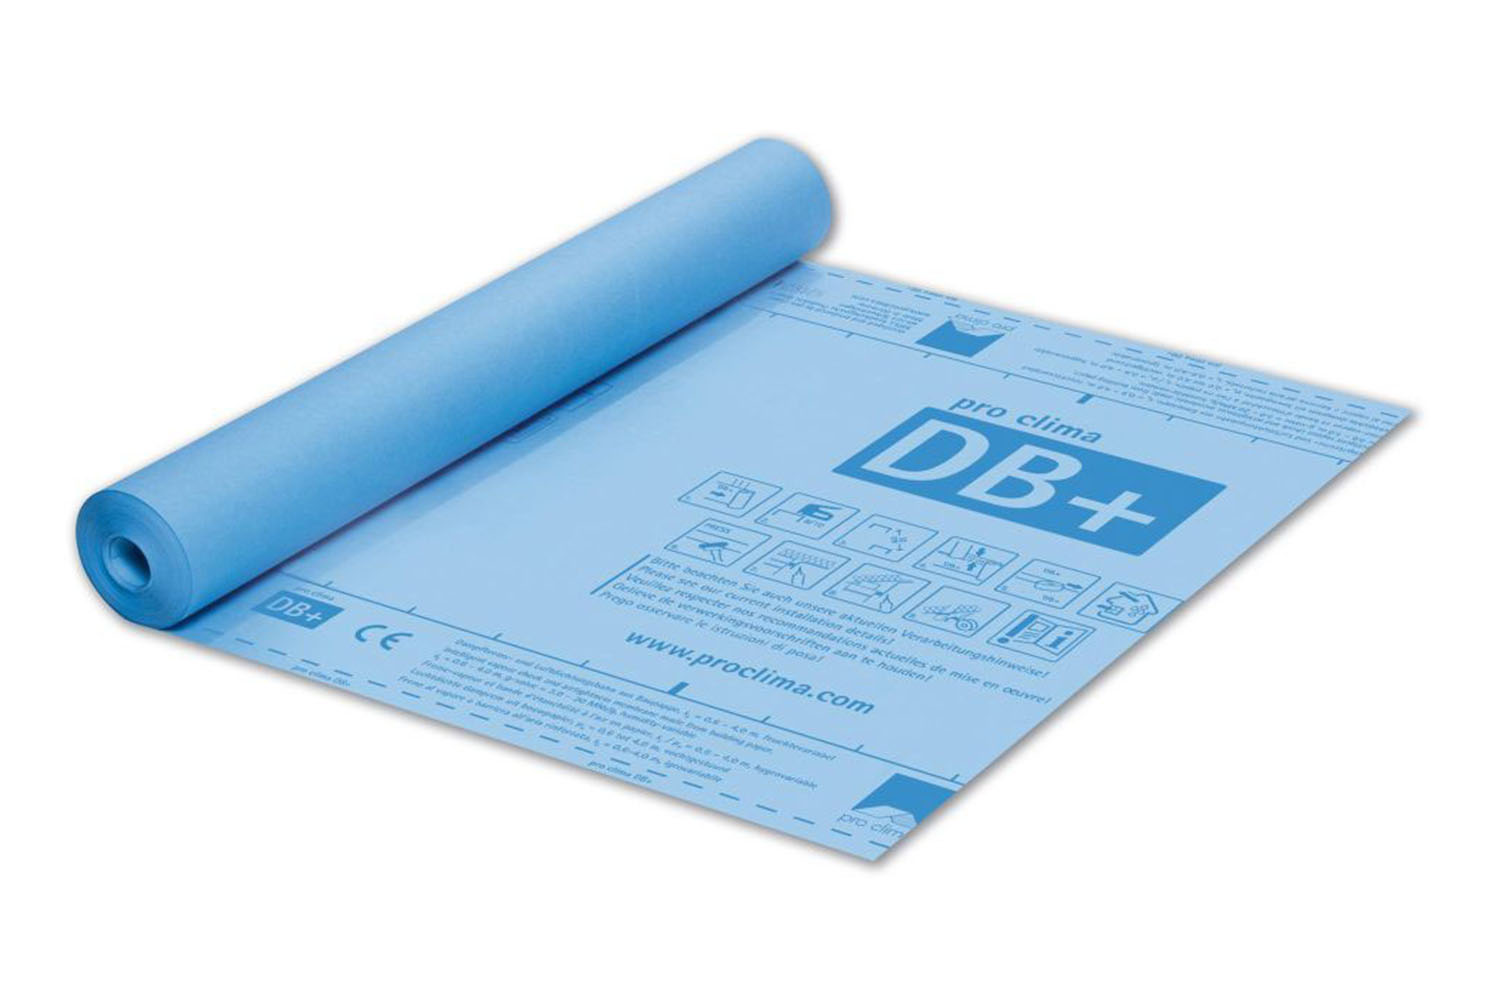 Pro Clima DB+ Hydrosafe Dampfbremse aus Baupappe